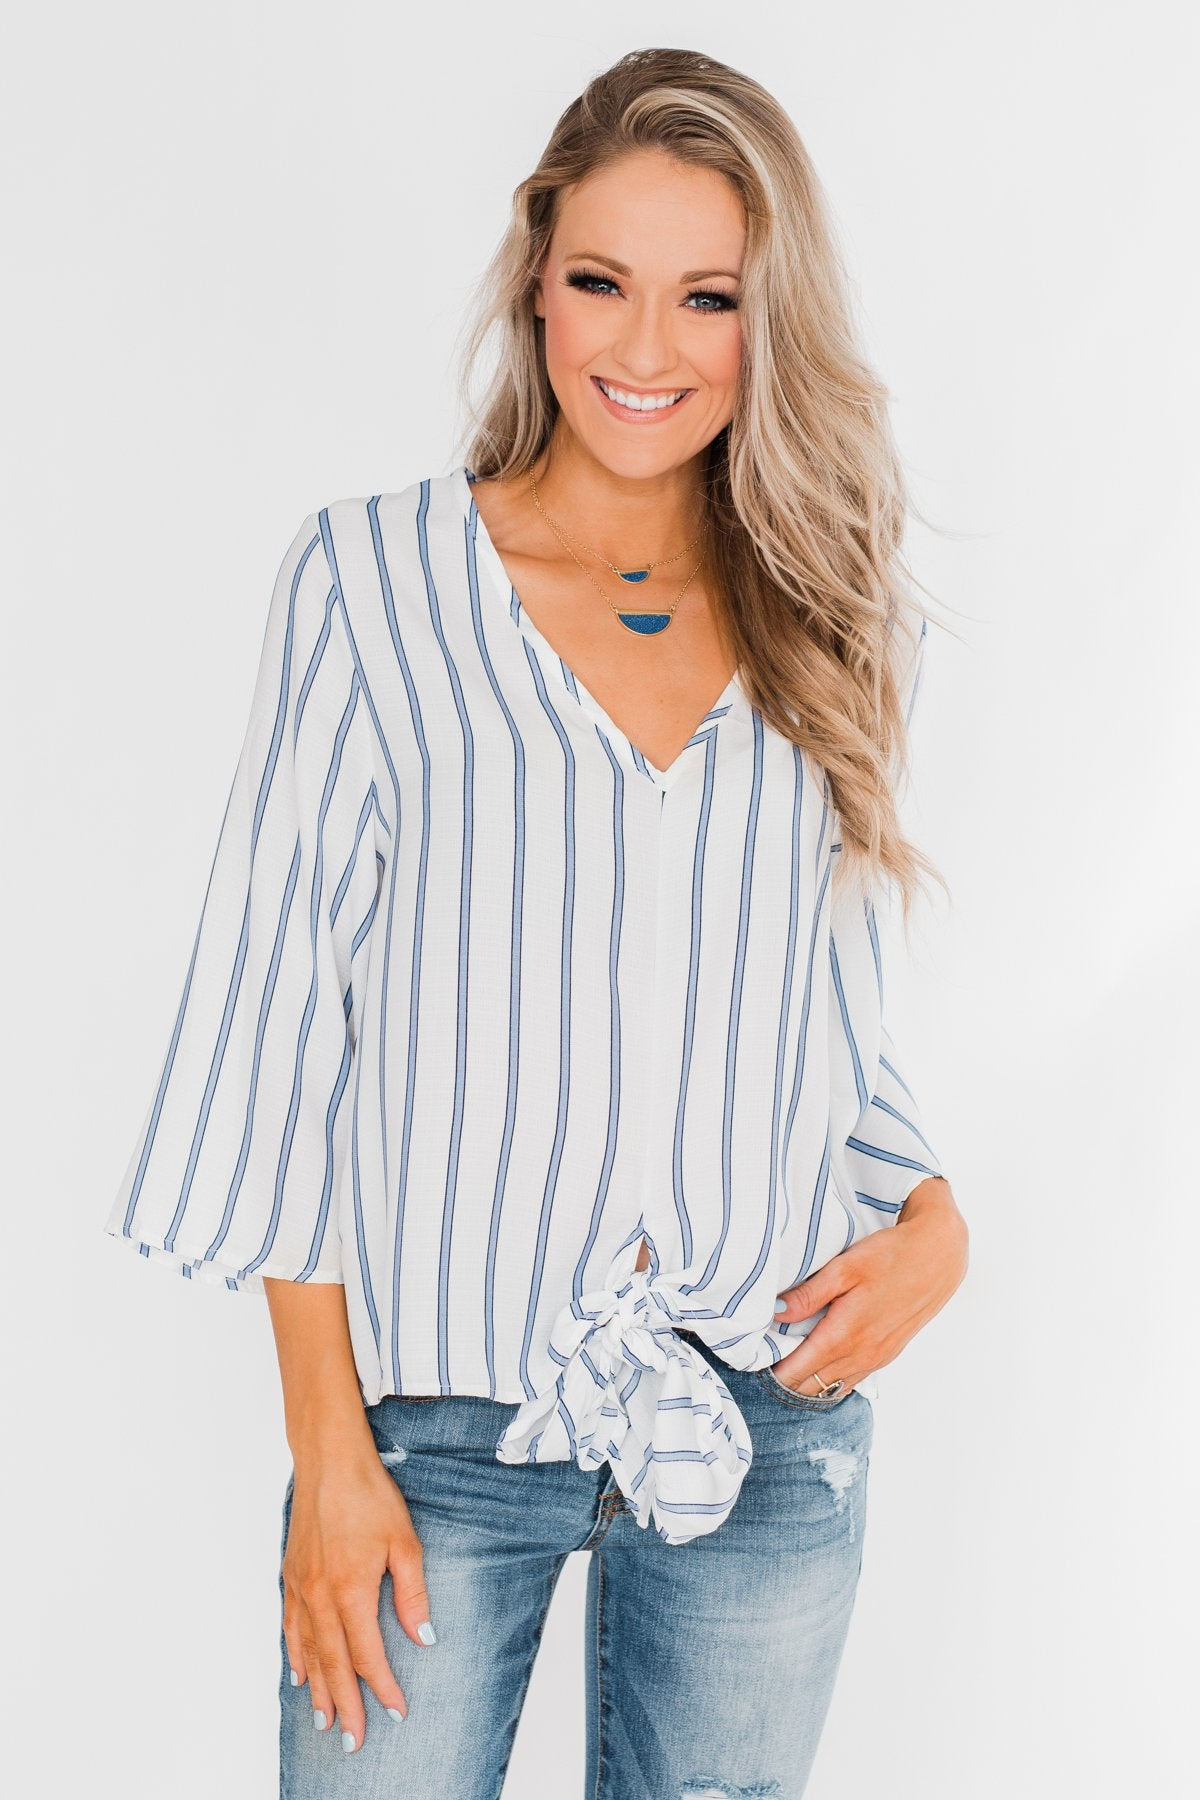 Light Of My Life Striped Blouse- Ivory & Light Blue